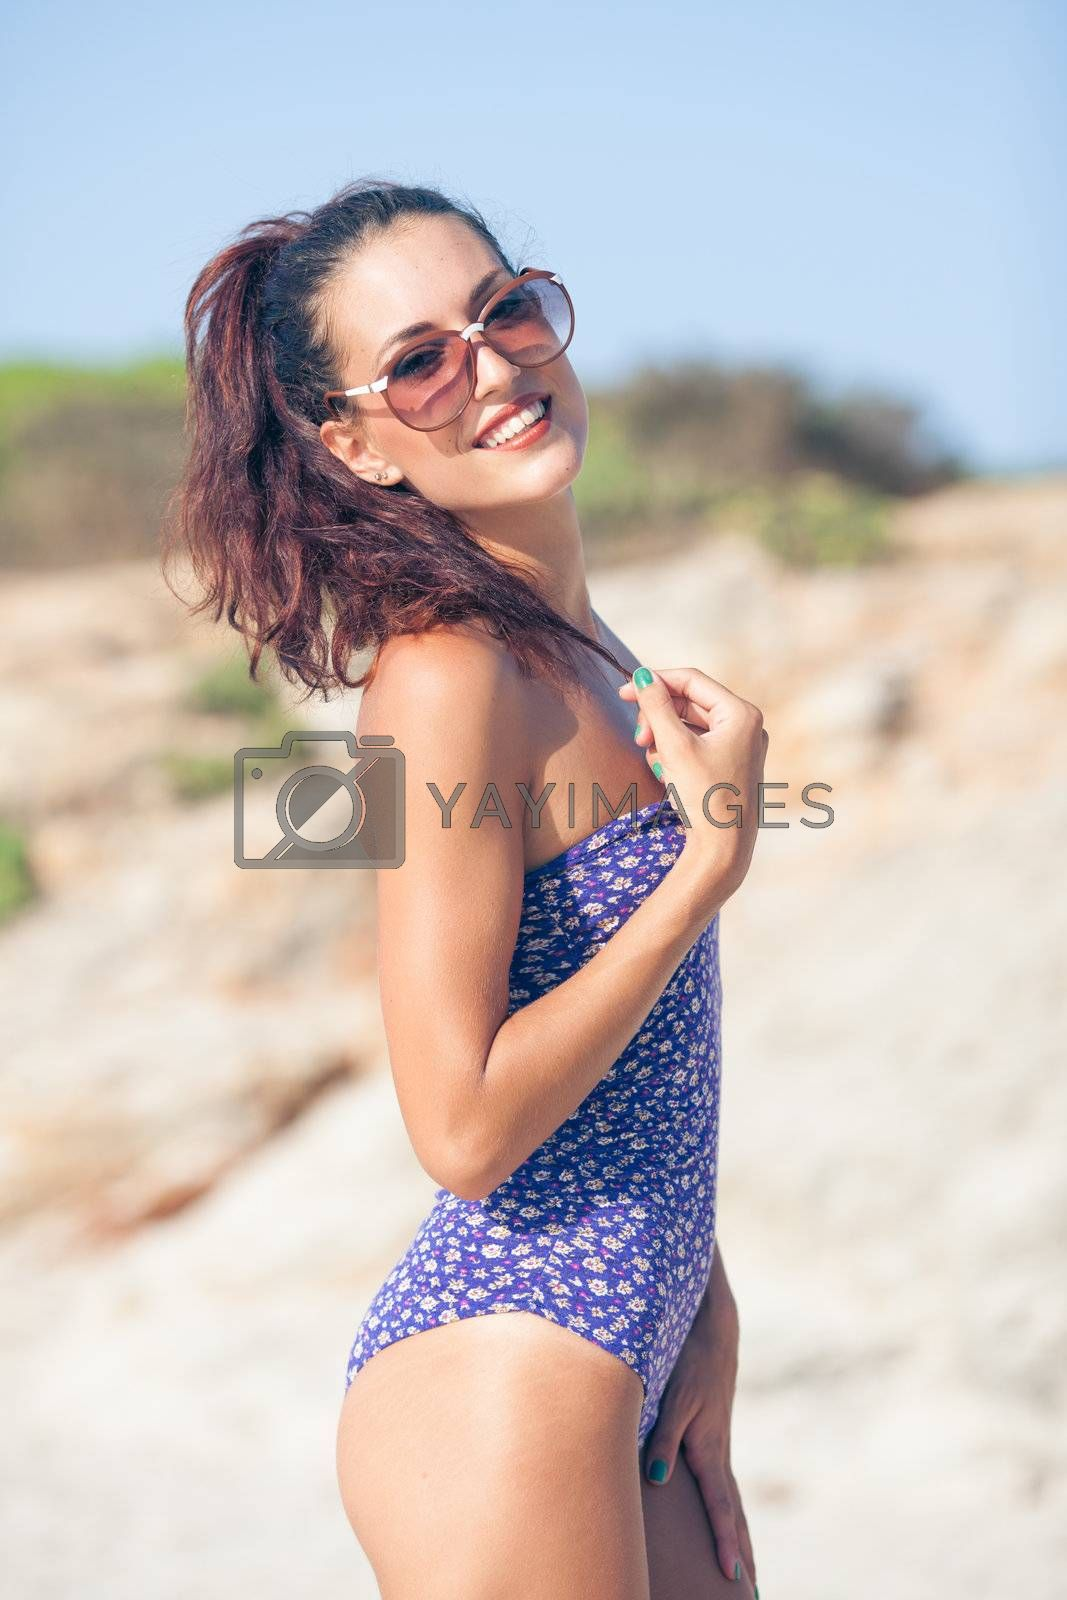 Sexy vintage model in swimsuit posing on the beach with glasses